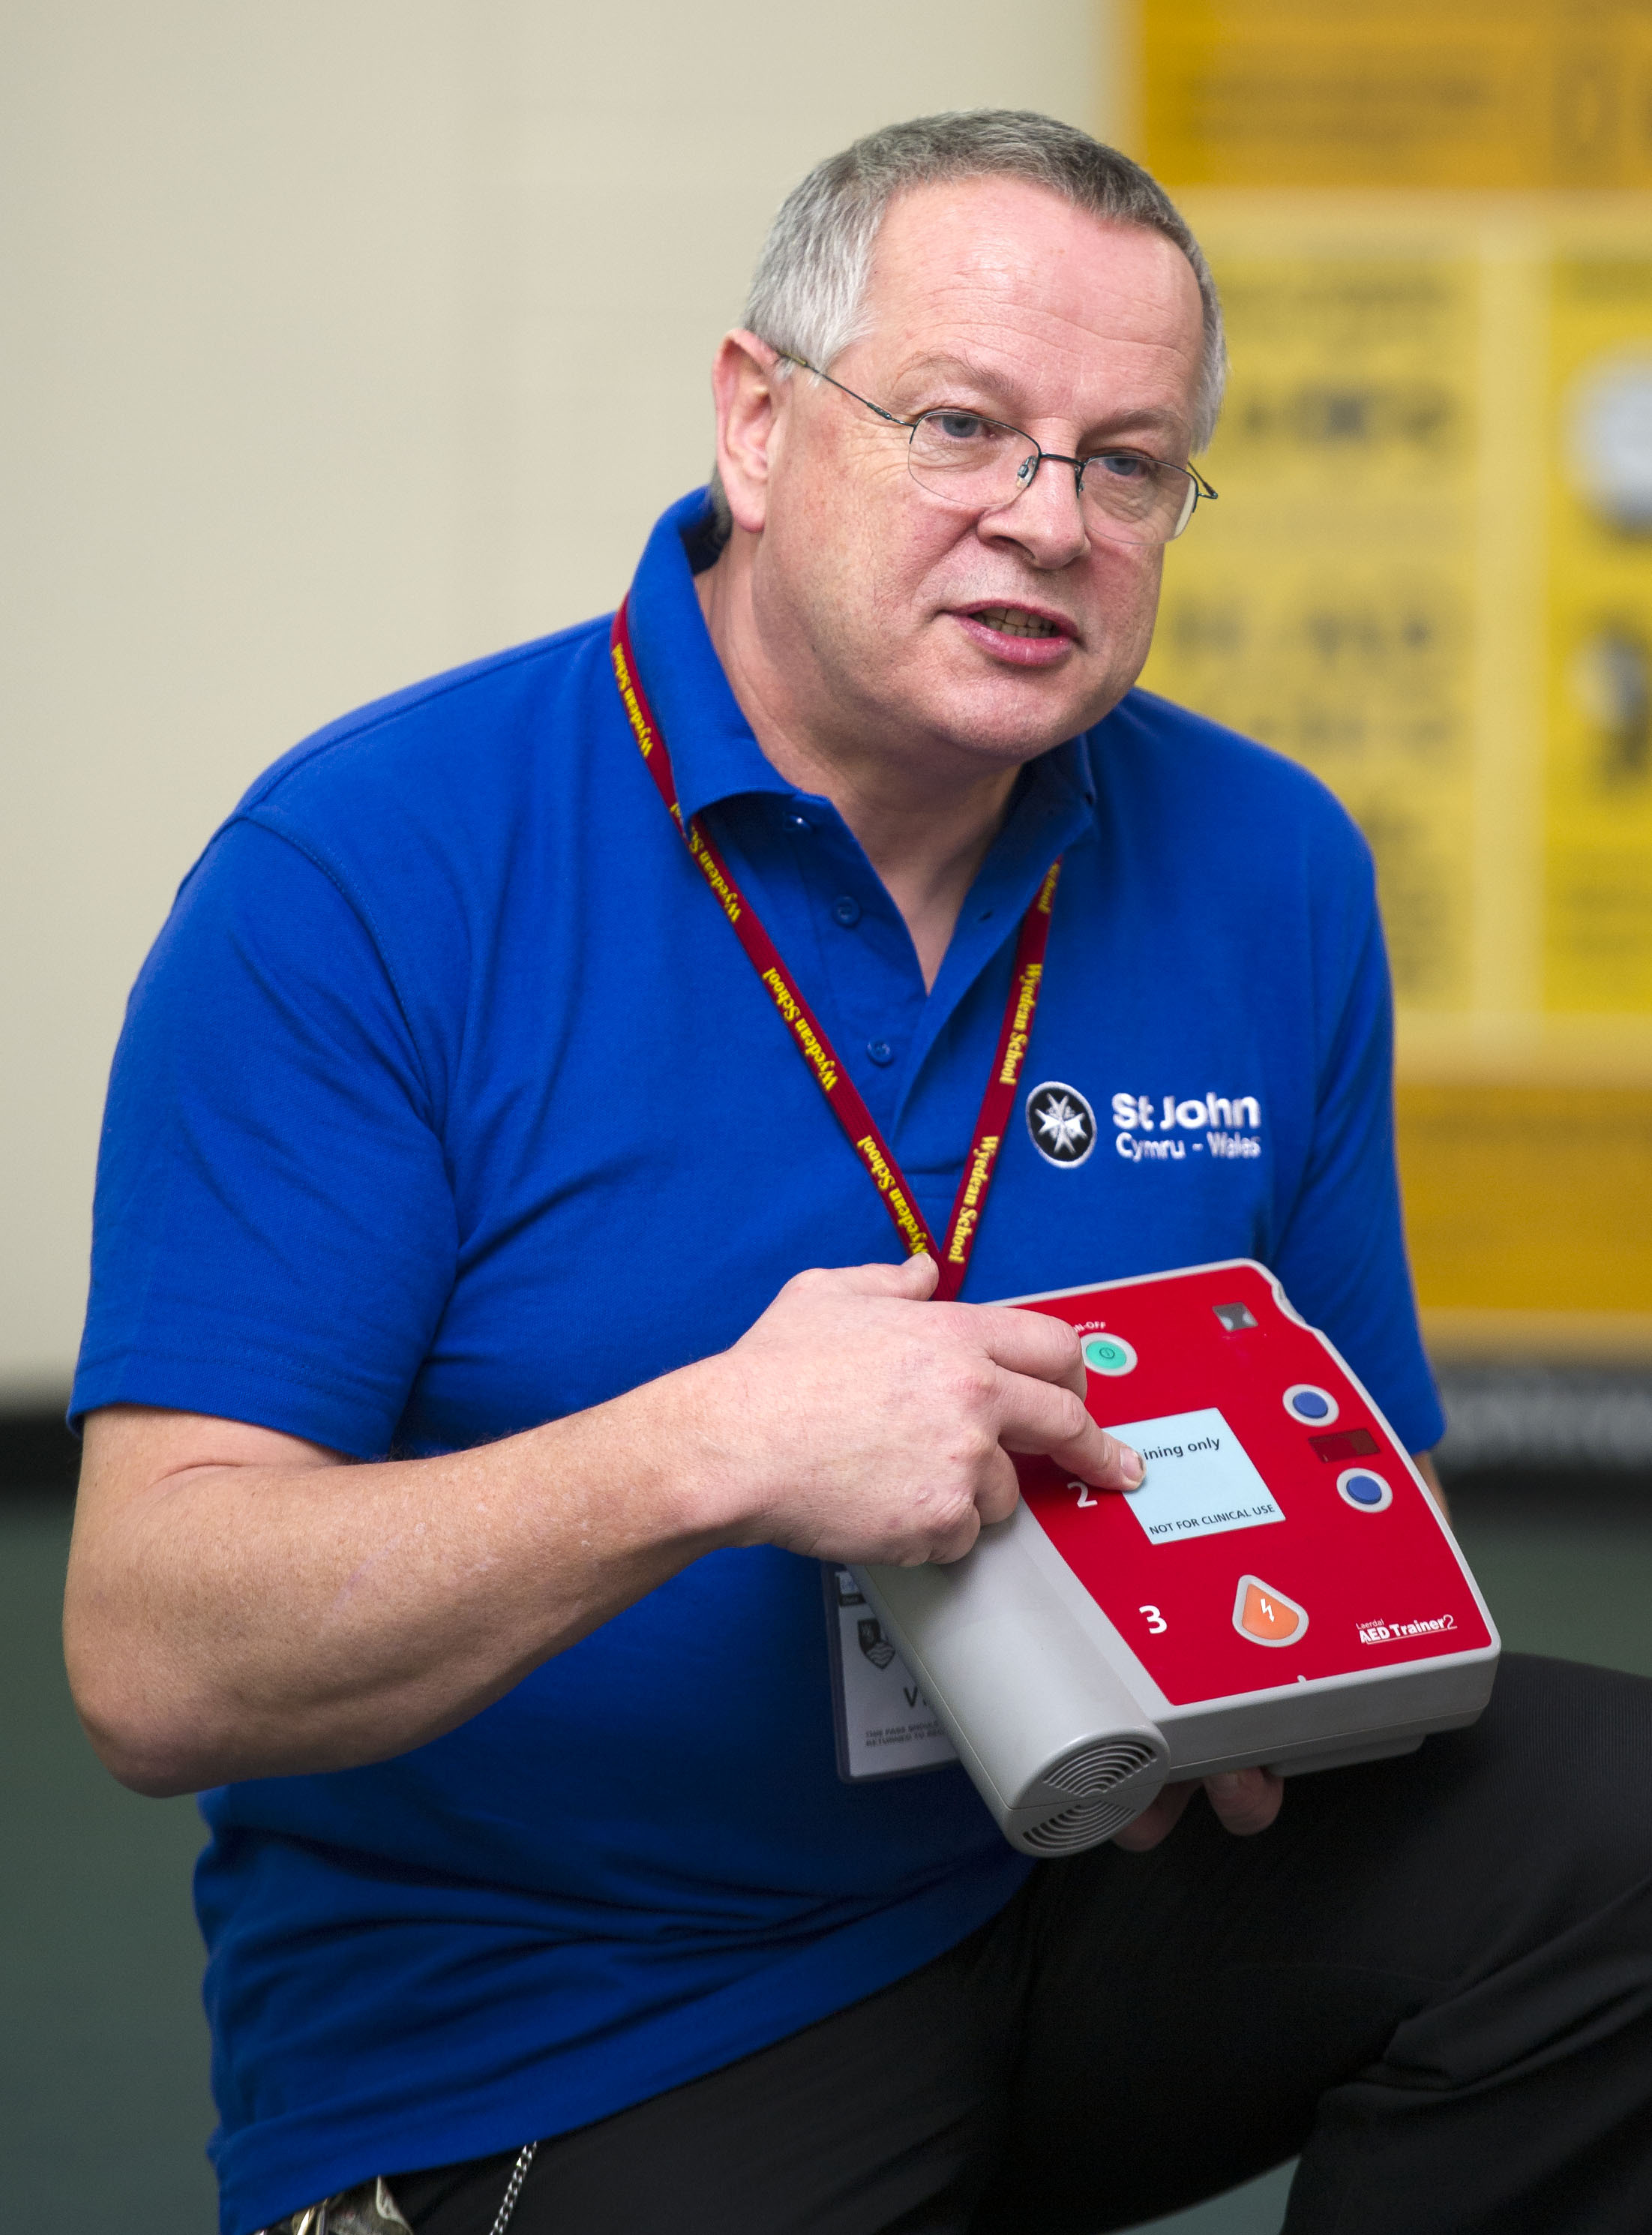 (3752709) Defibrillator training: St John Wales trainer David Ball explaining the workings of a defibrillator machine to pupils at Wyedean School, Chepstow.